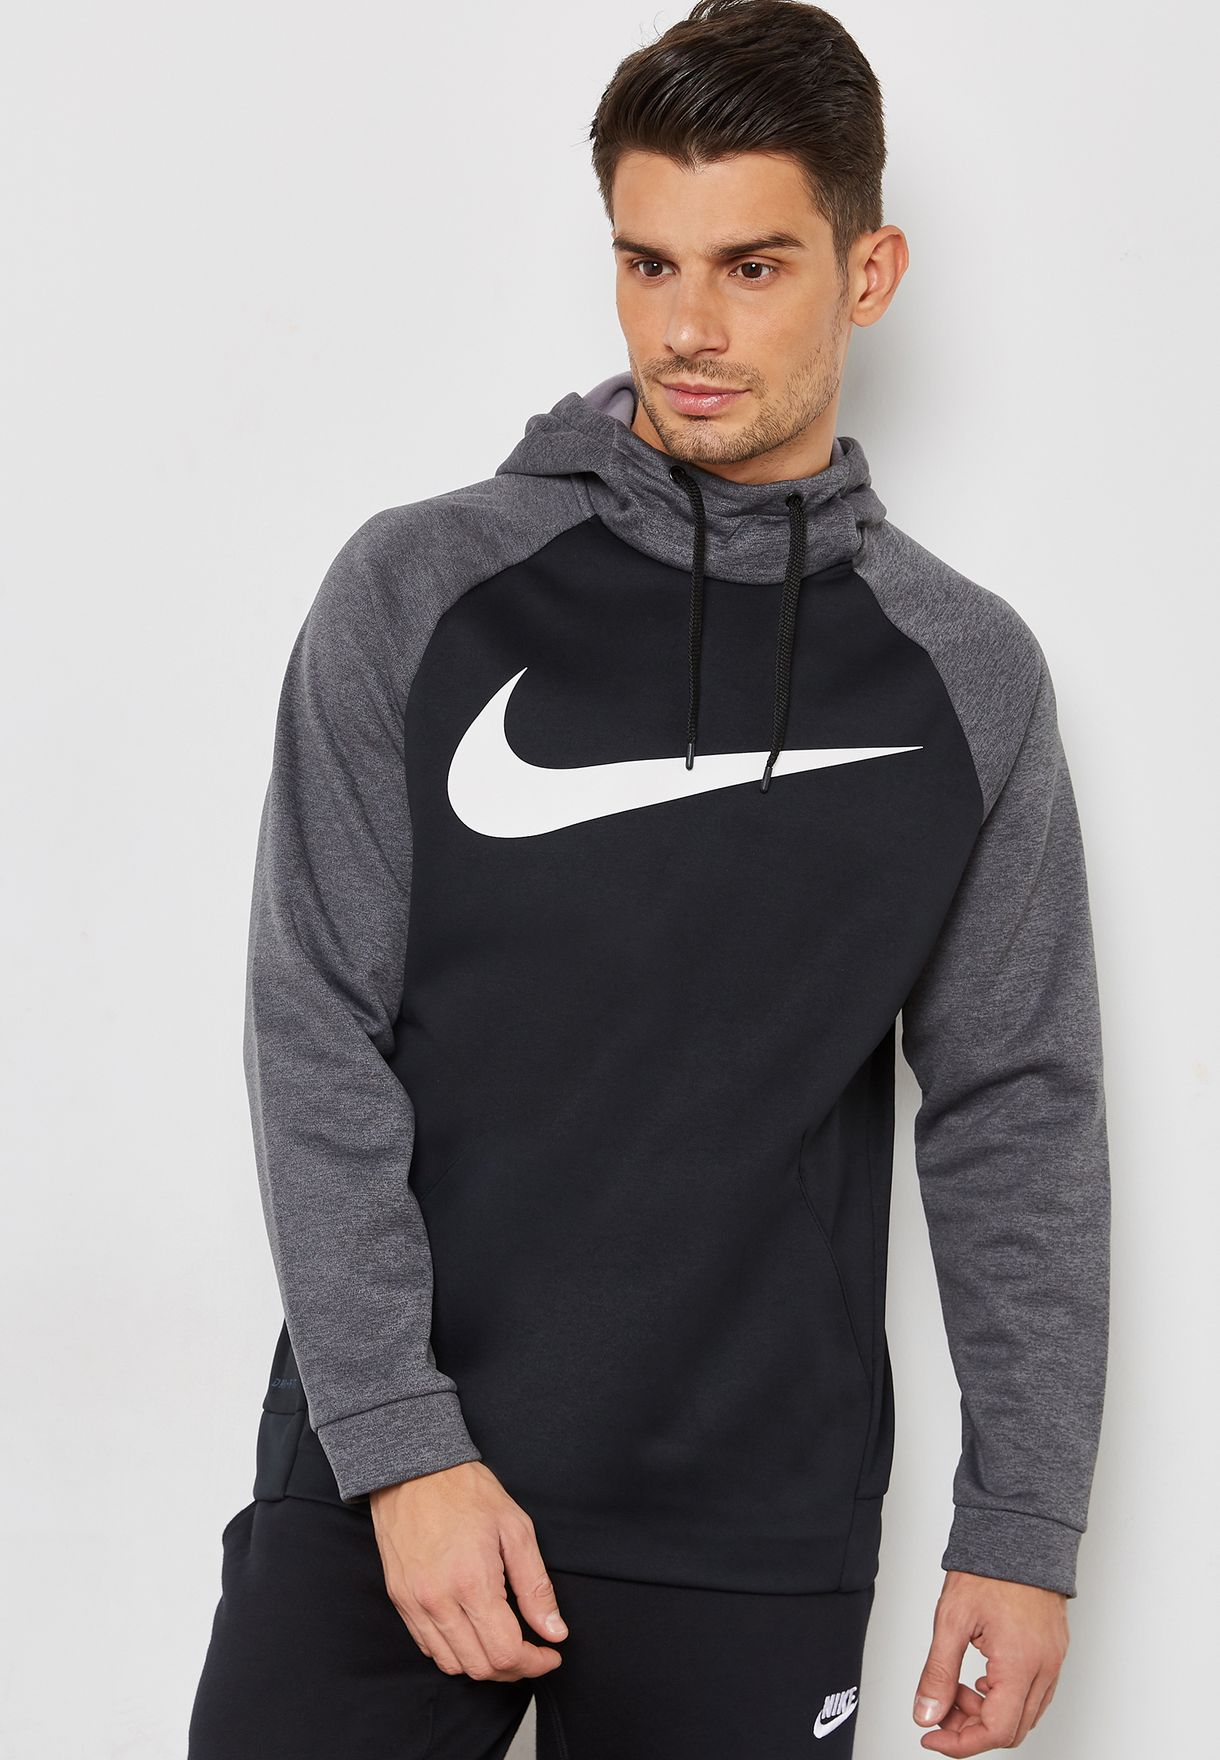 37bdf81eb62e Shop Nike multicolor Essential Therma Swoosh Hoodie 931991-010 for ...